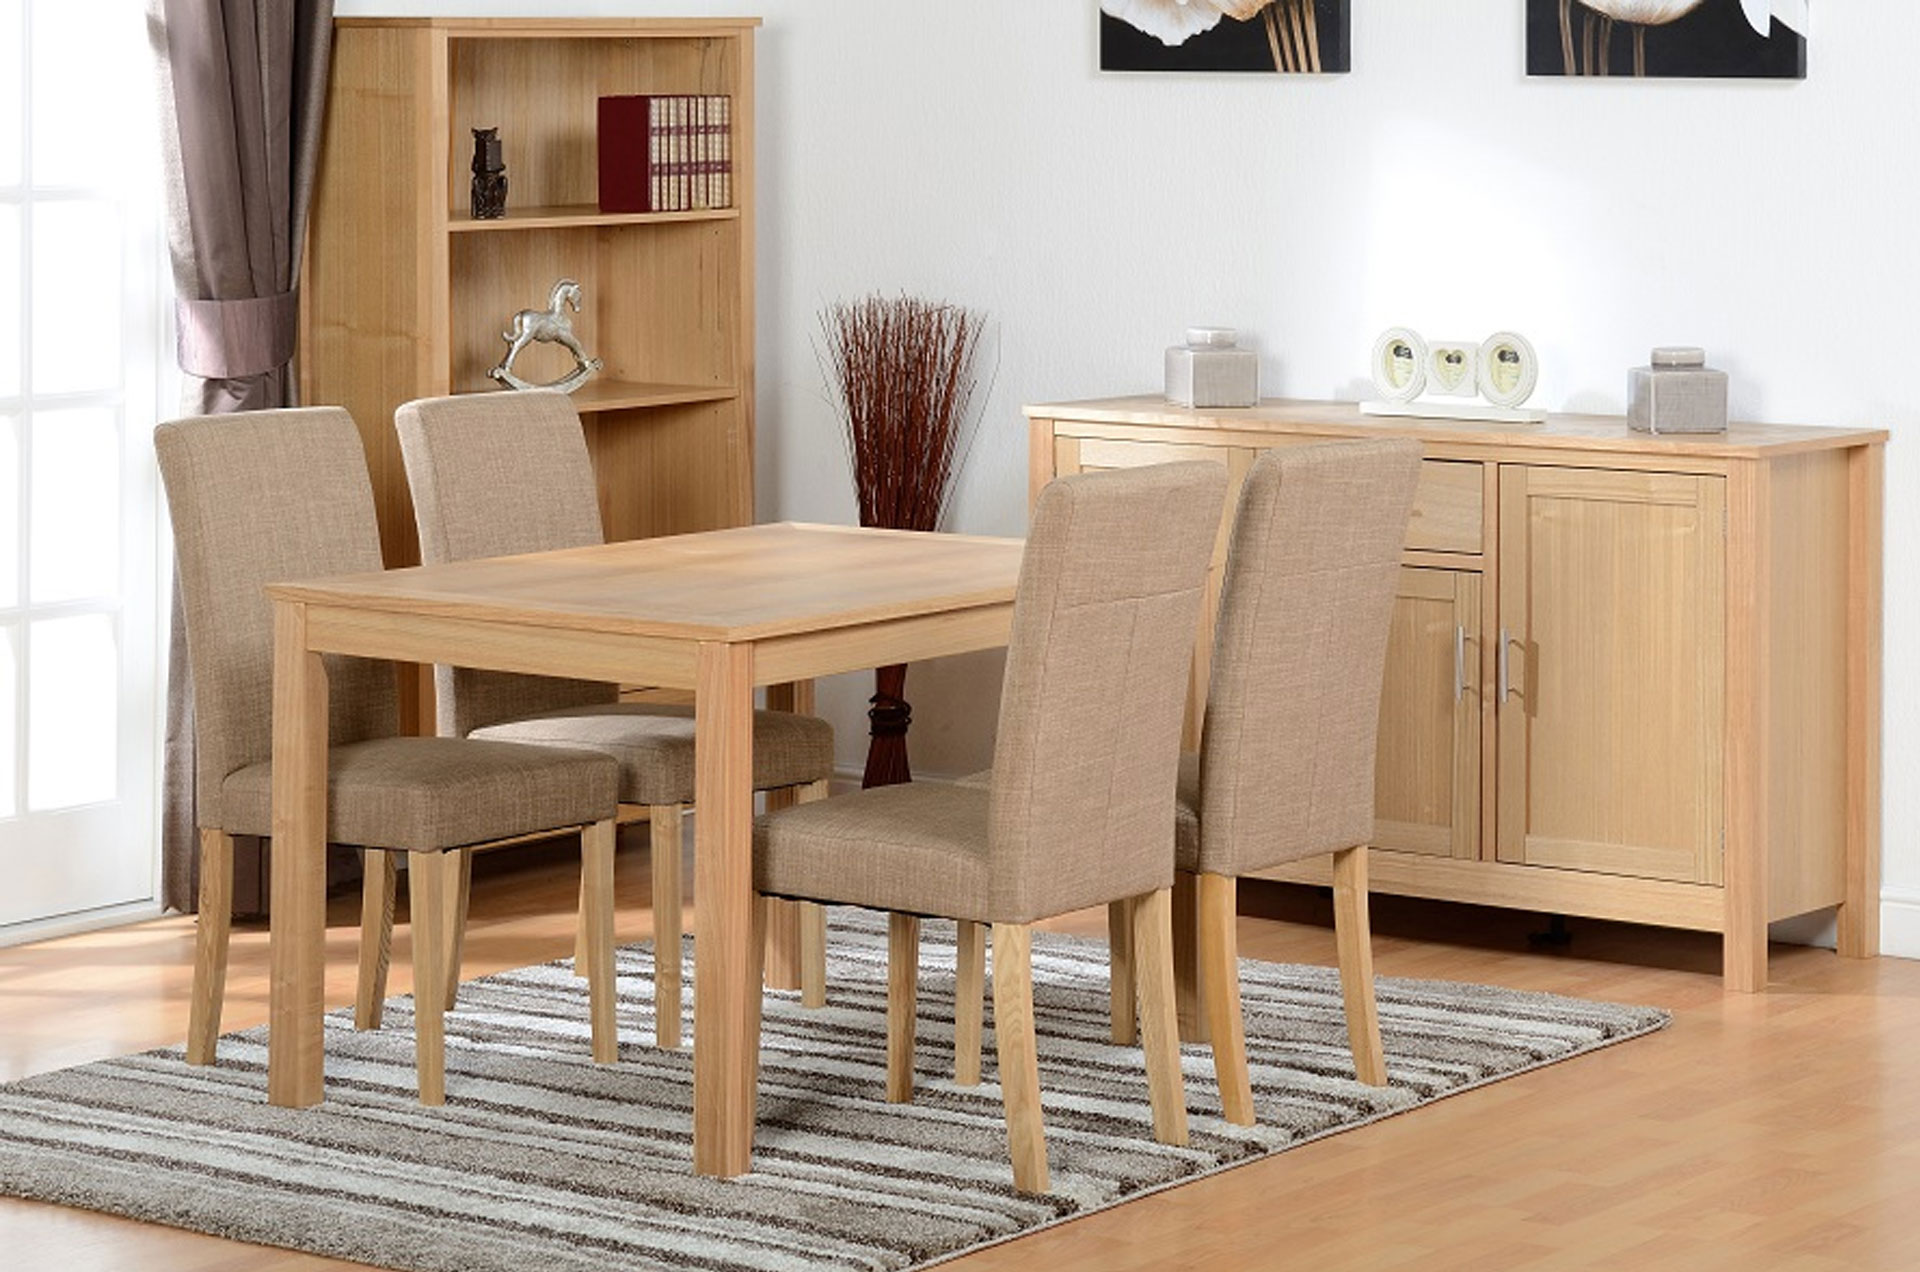 Dining Tables Galway